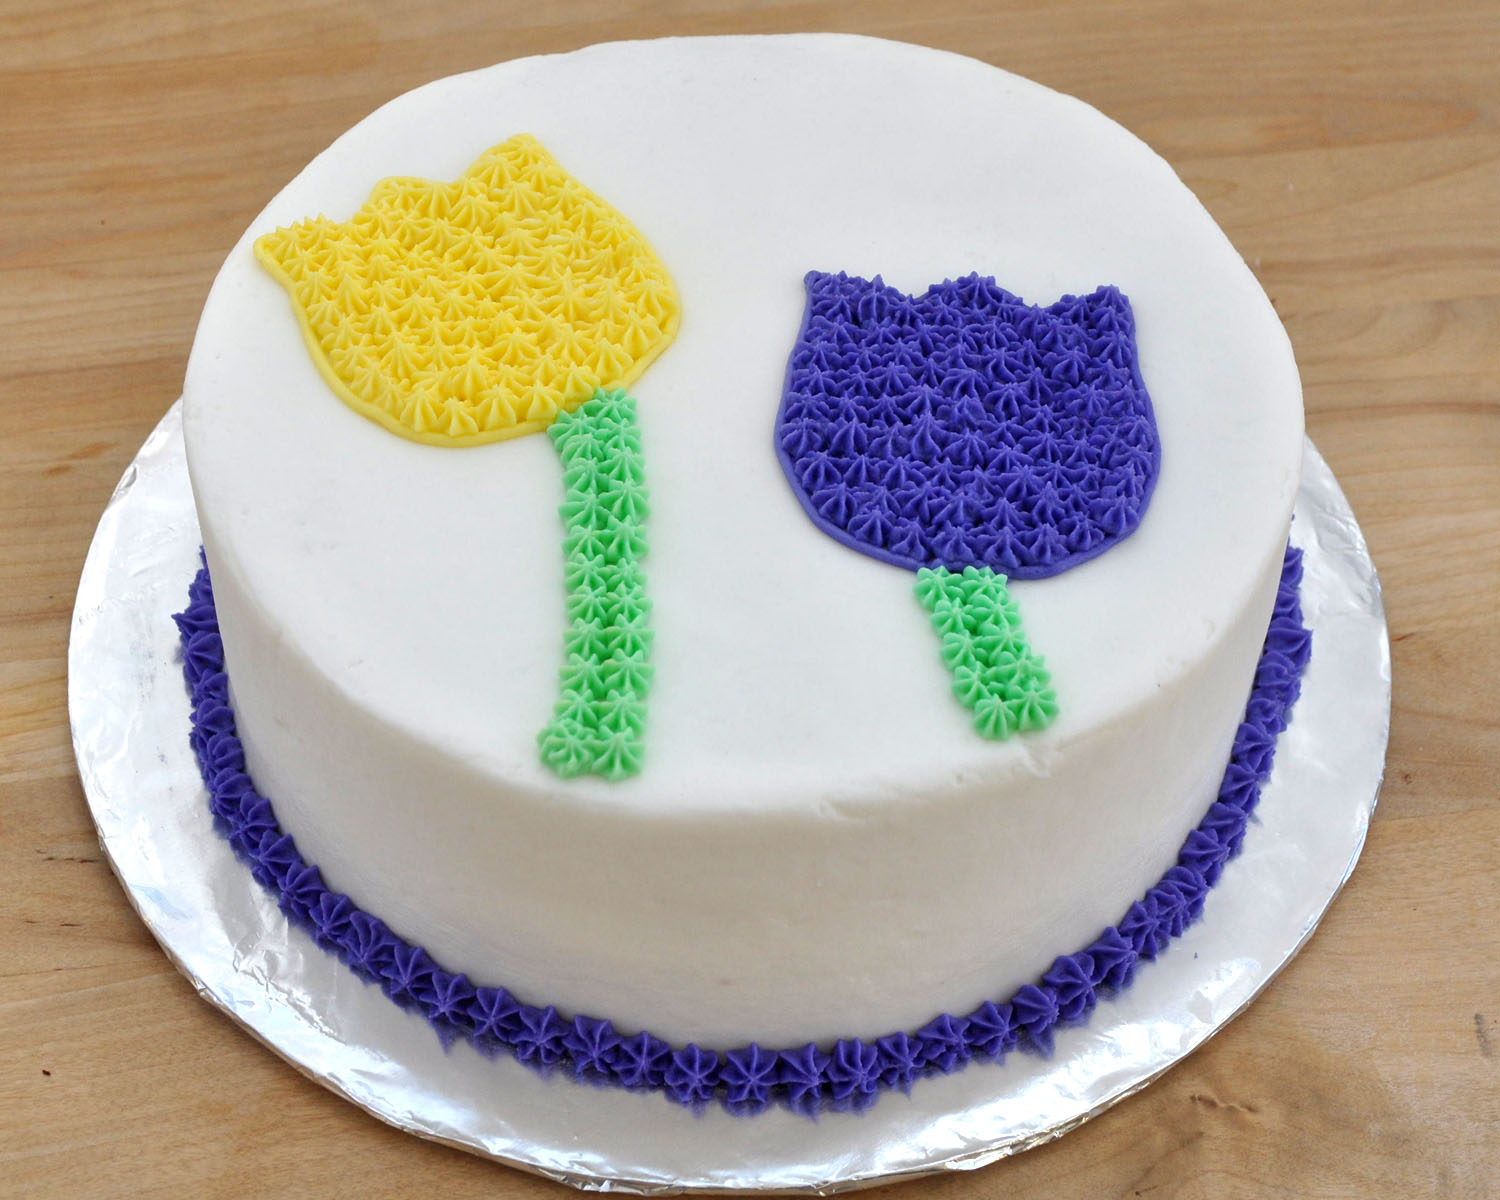 How To Decorate A Cake At Home Easy